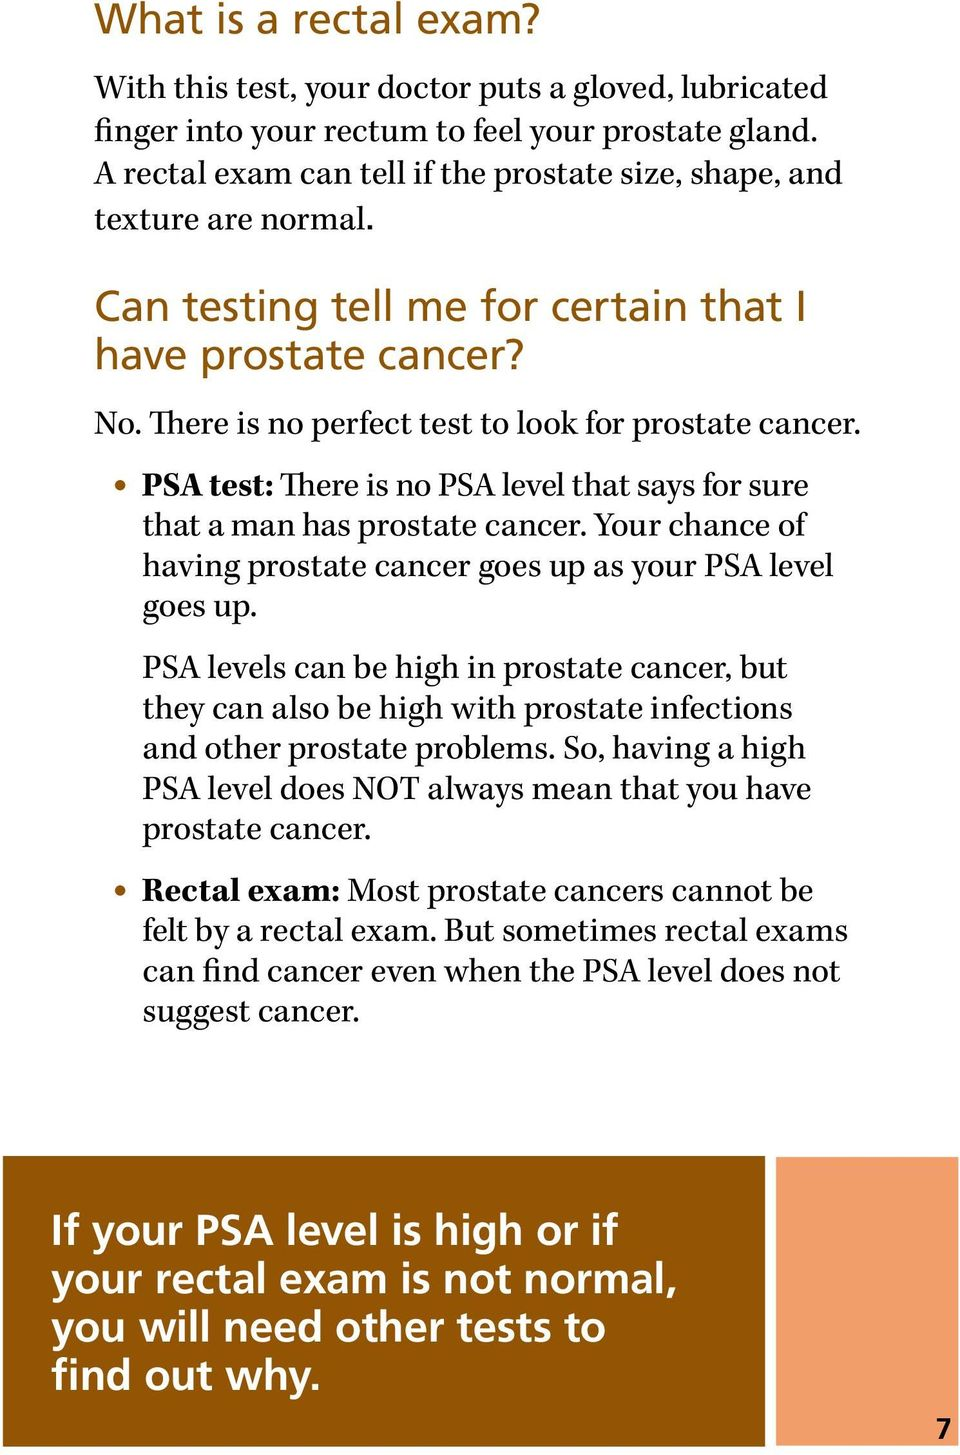 PSA test: There is no PSA level that says for sure that a man has prostate cancer. Your chance of having prostate cancer goes up as your PSA level goes up.